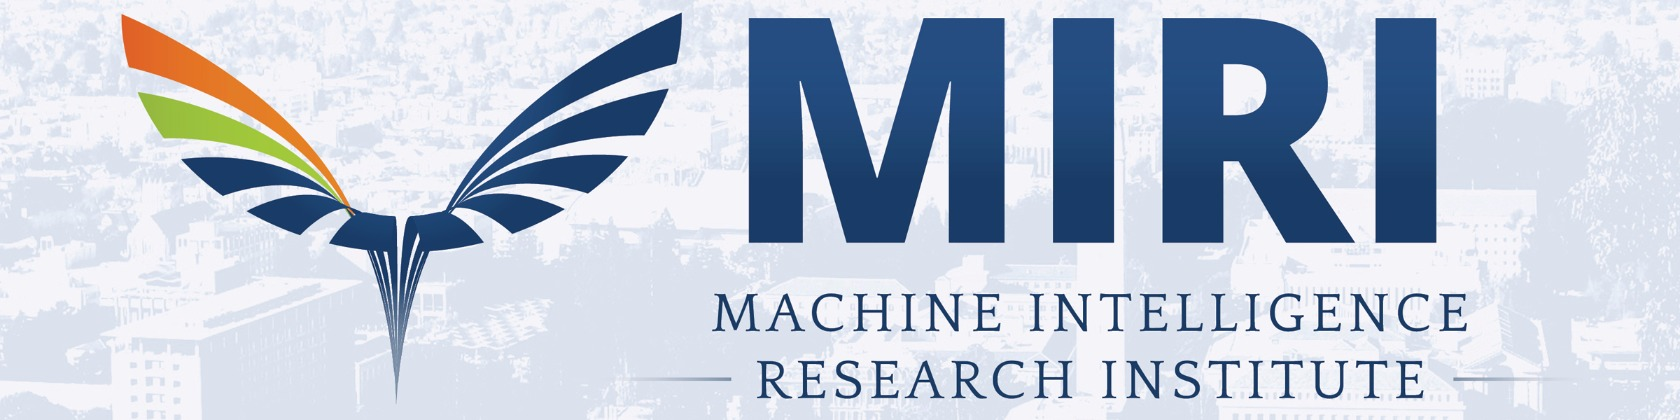 MIRI: Machine Intelligence Research Institute